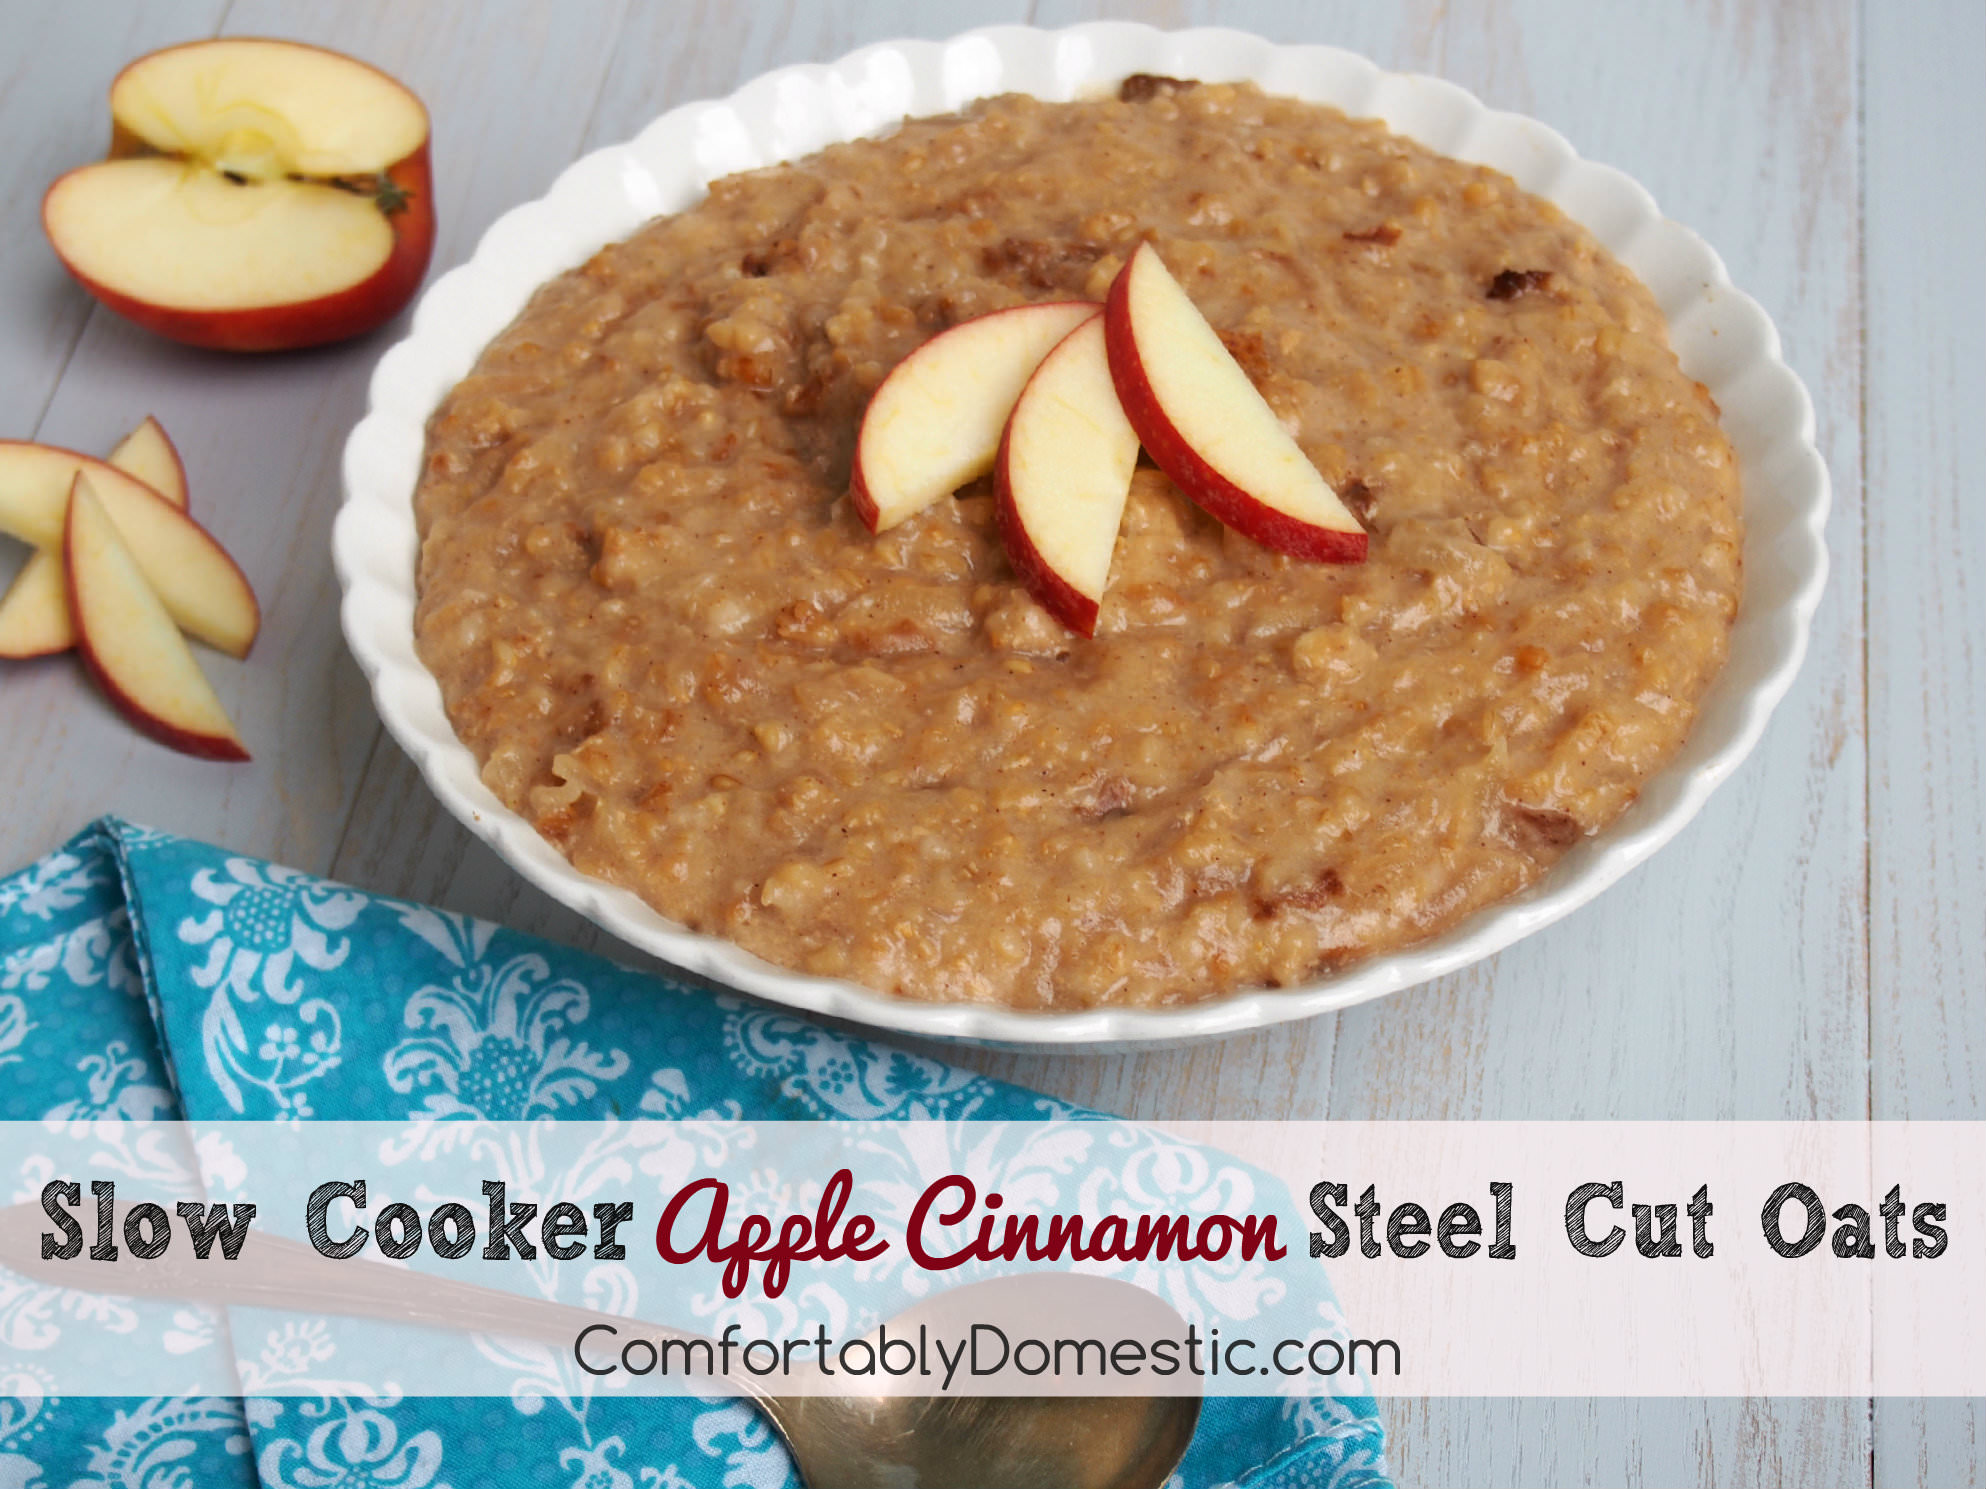 Slow Cooker Apple Cinnamon Steel Cut Oats | ComfortablyDomestic.com